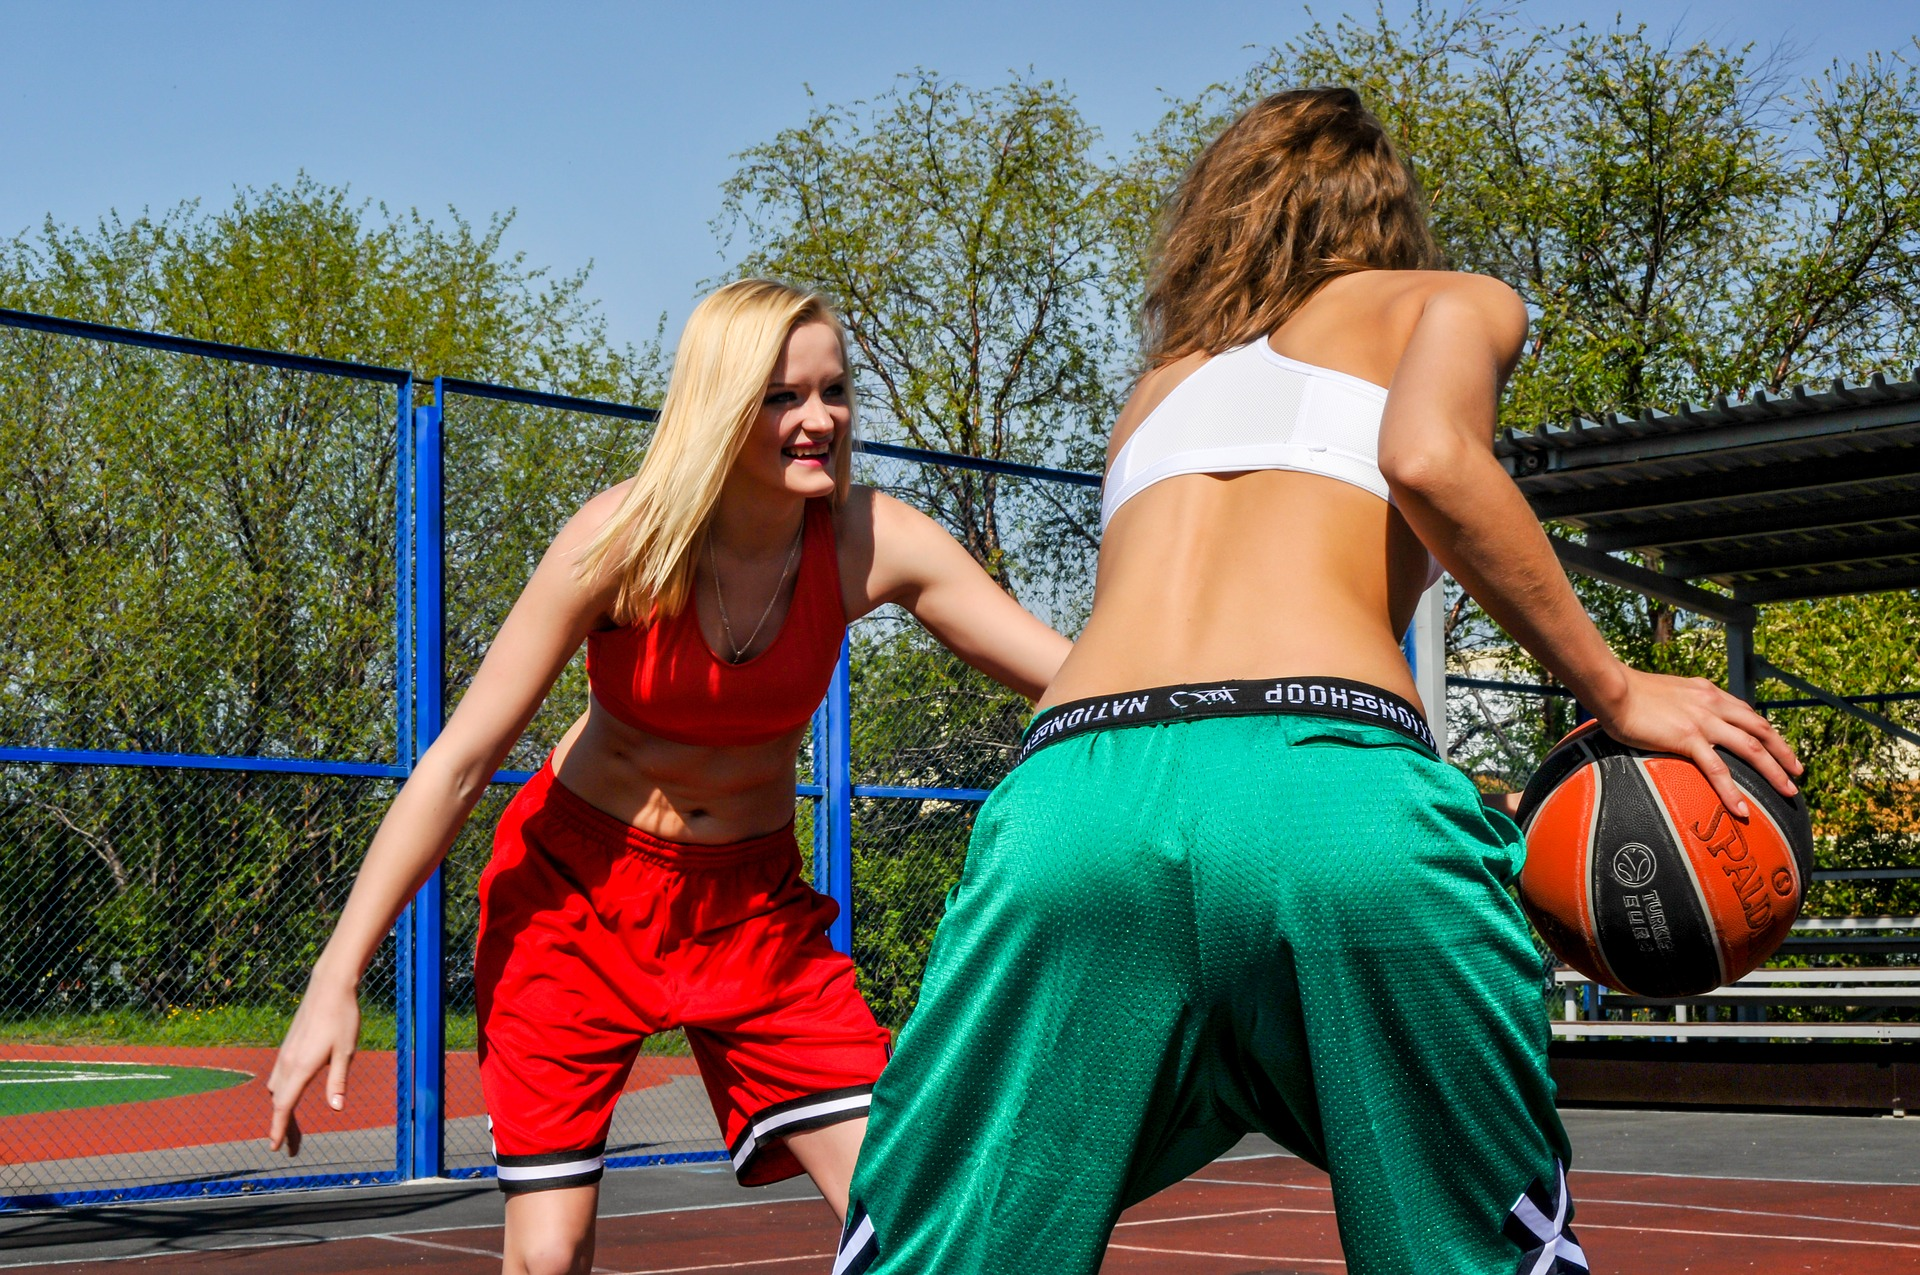 Basketball is getting popular among girls